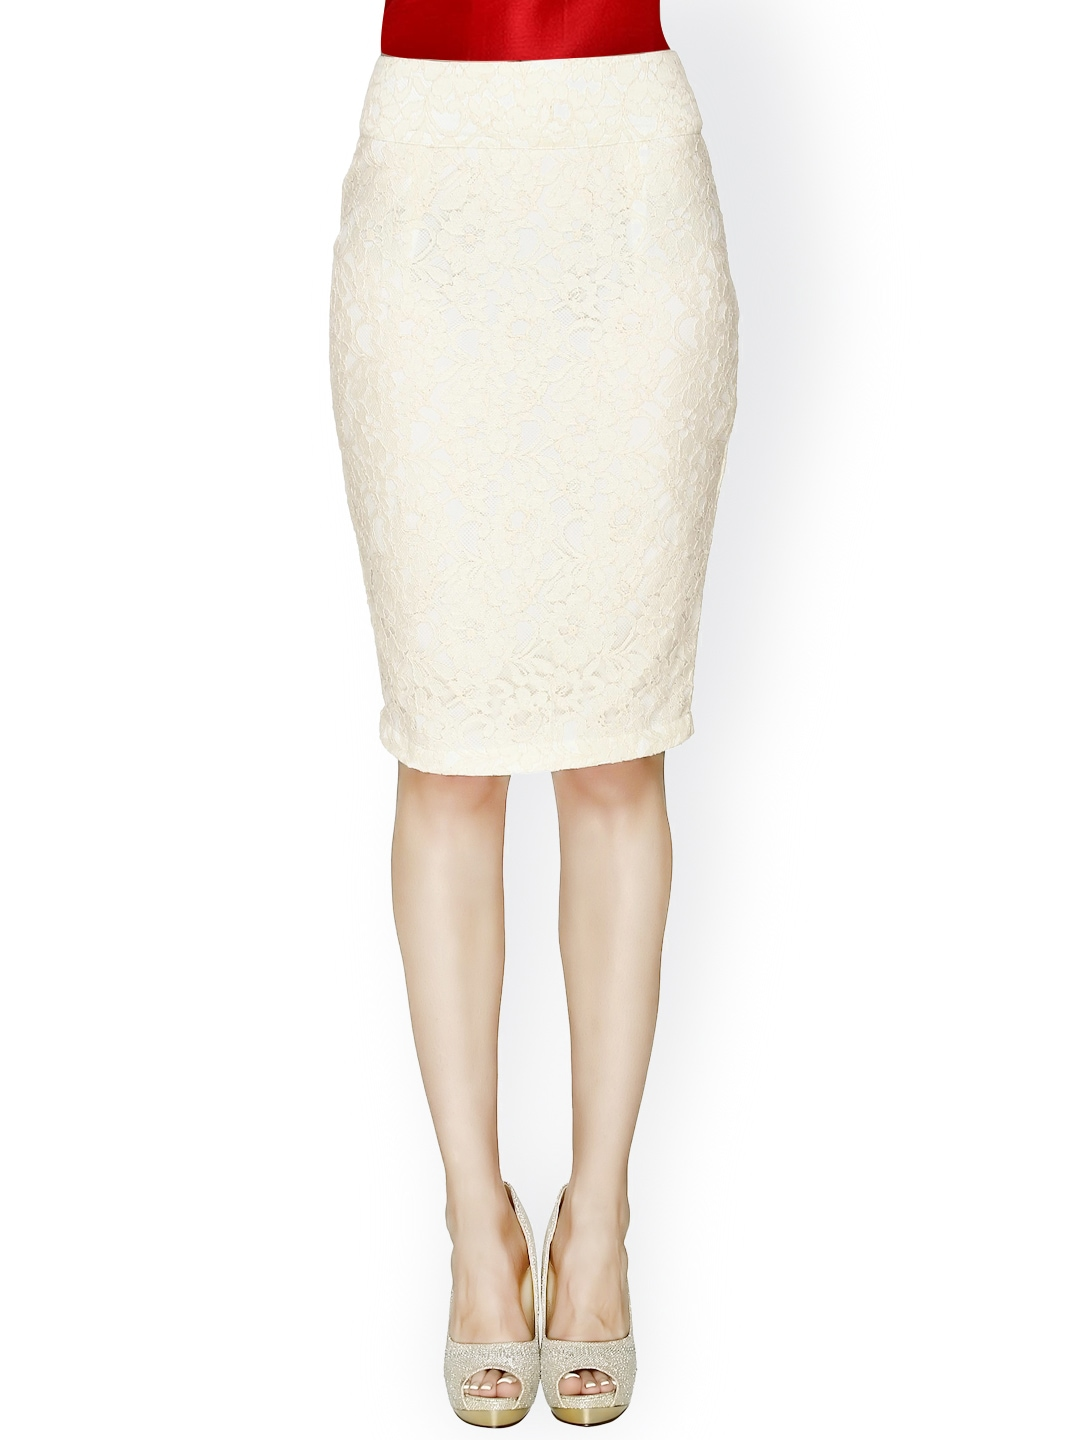 myntra 20dresses white lace pencil skirt 786865 buy